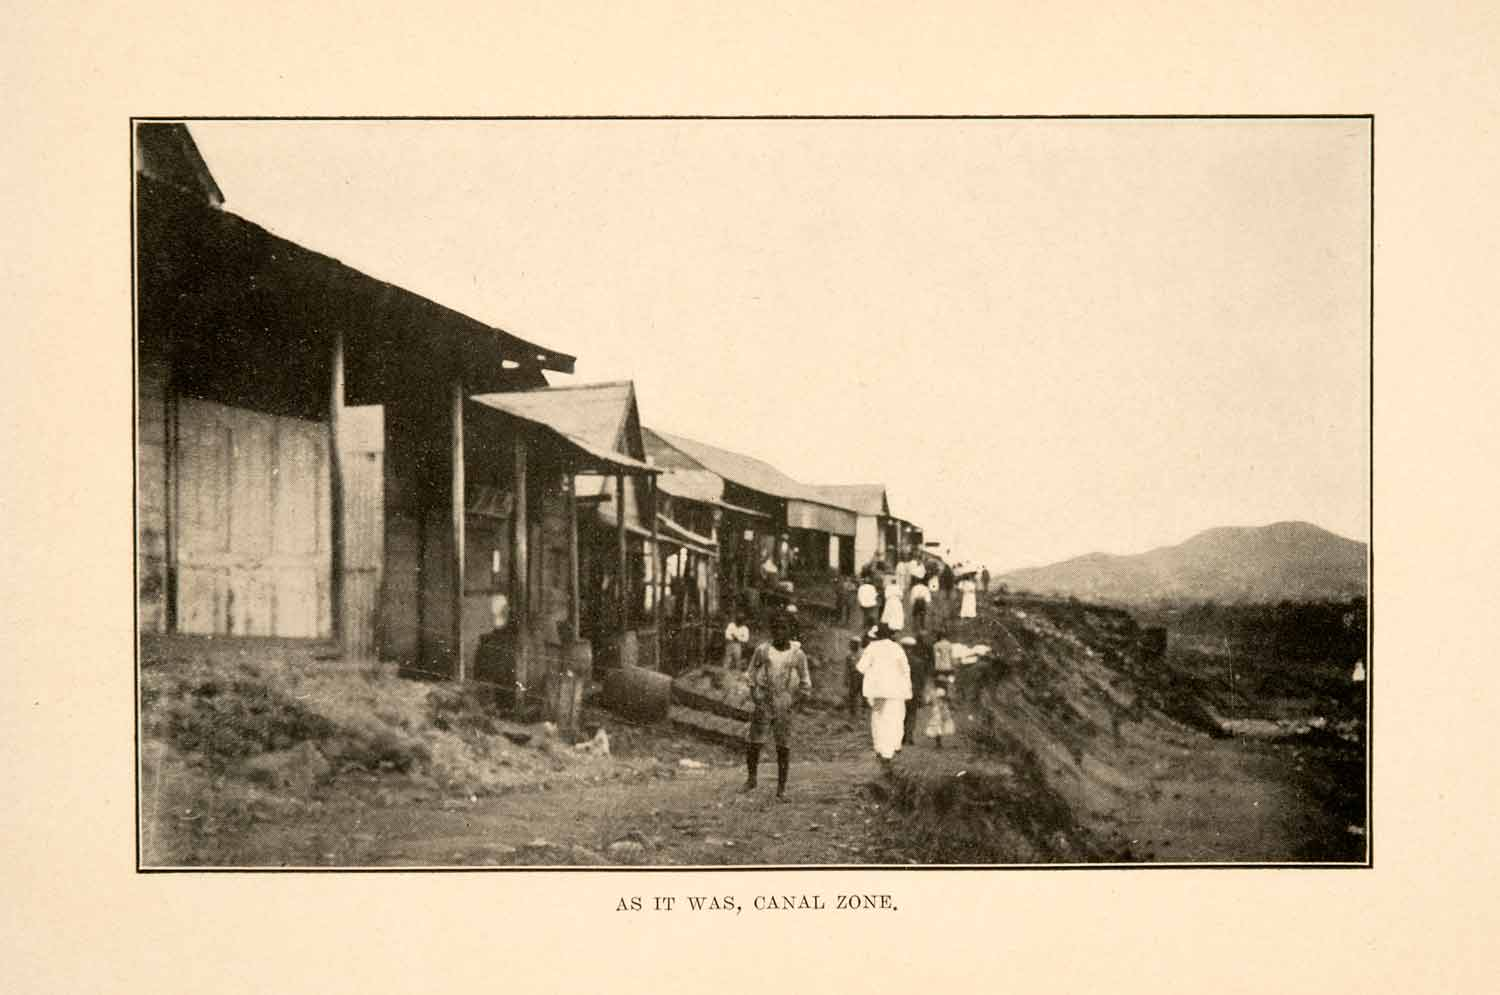 1908 Print Panama Canal Zone Construction Village Valley Homes Children XGDA2